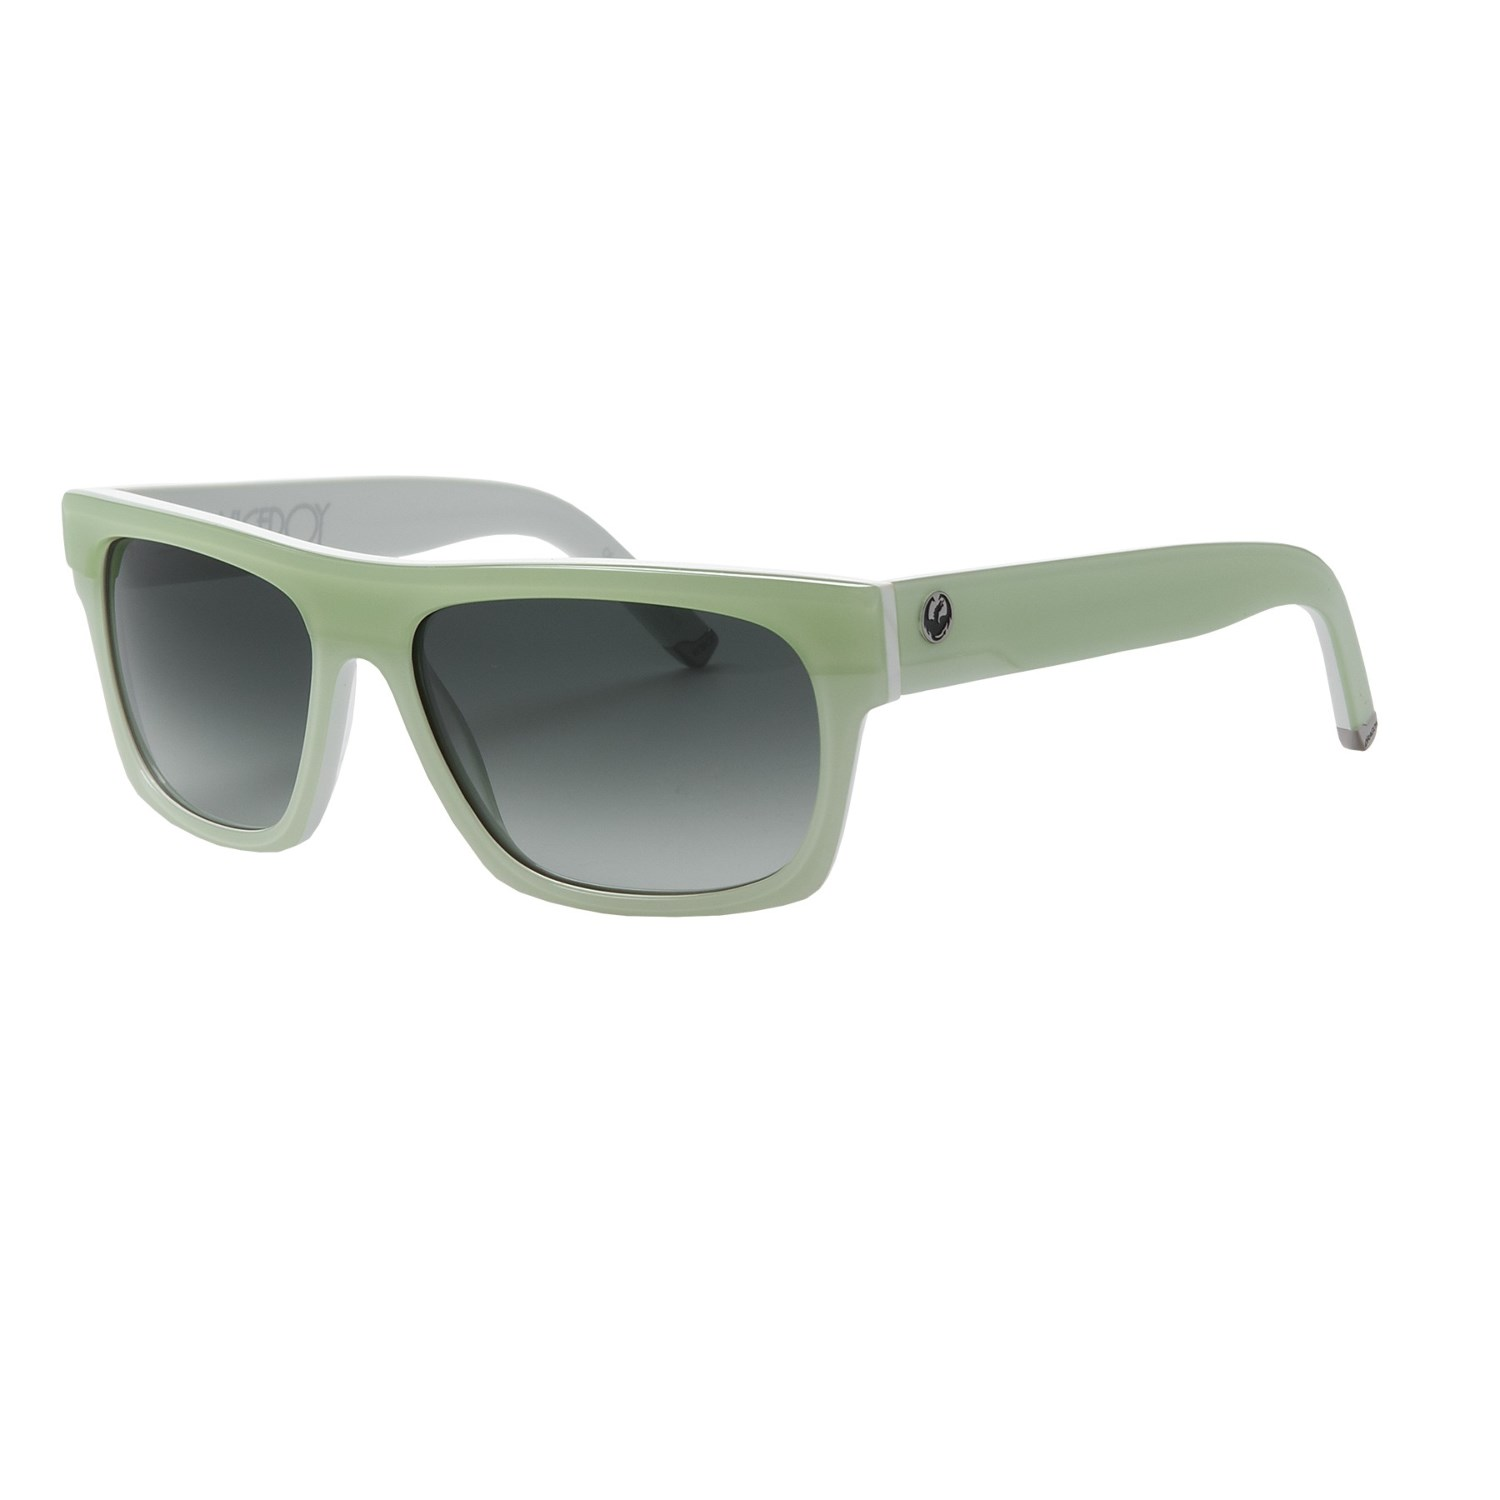 f29e4c6360c Dragon Alliance Viceroy Sunglasses - Save 50%